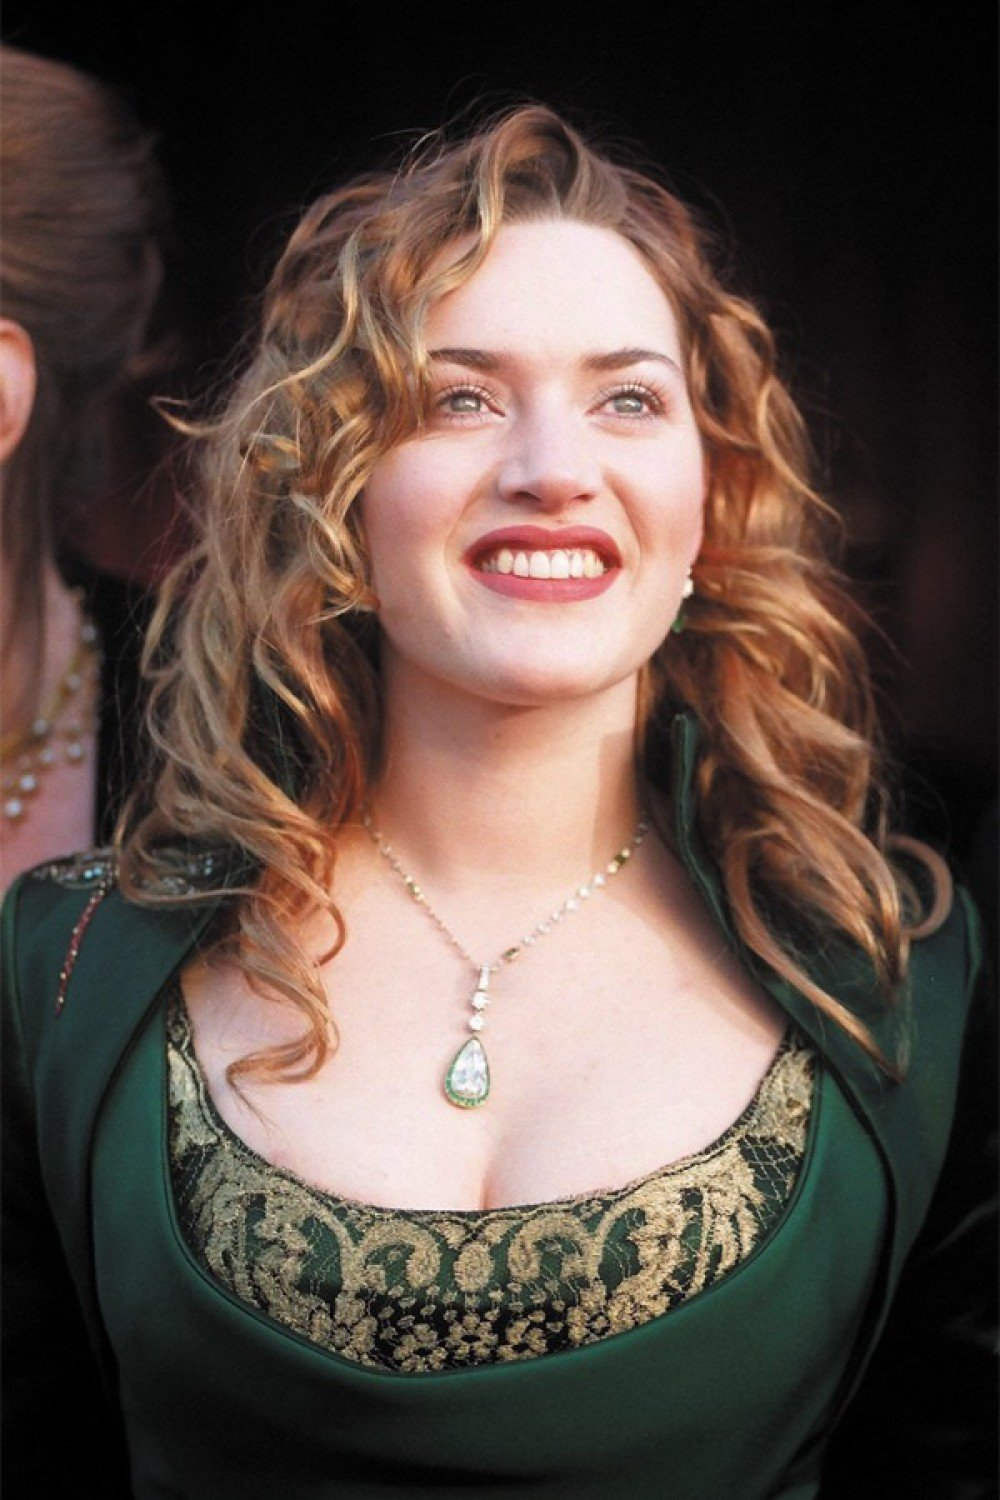 PK Arts English Actress Kate Winslet Wall Poster 12 x 18 inch HD Quality  Material - Gloss Paper Unframed Qty 1.: Amazon.in: Home & Kitchen